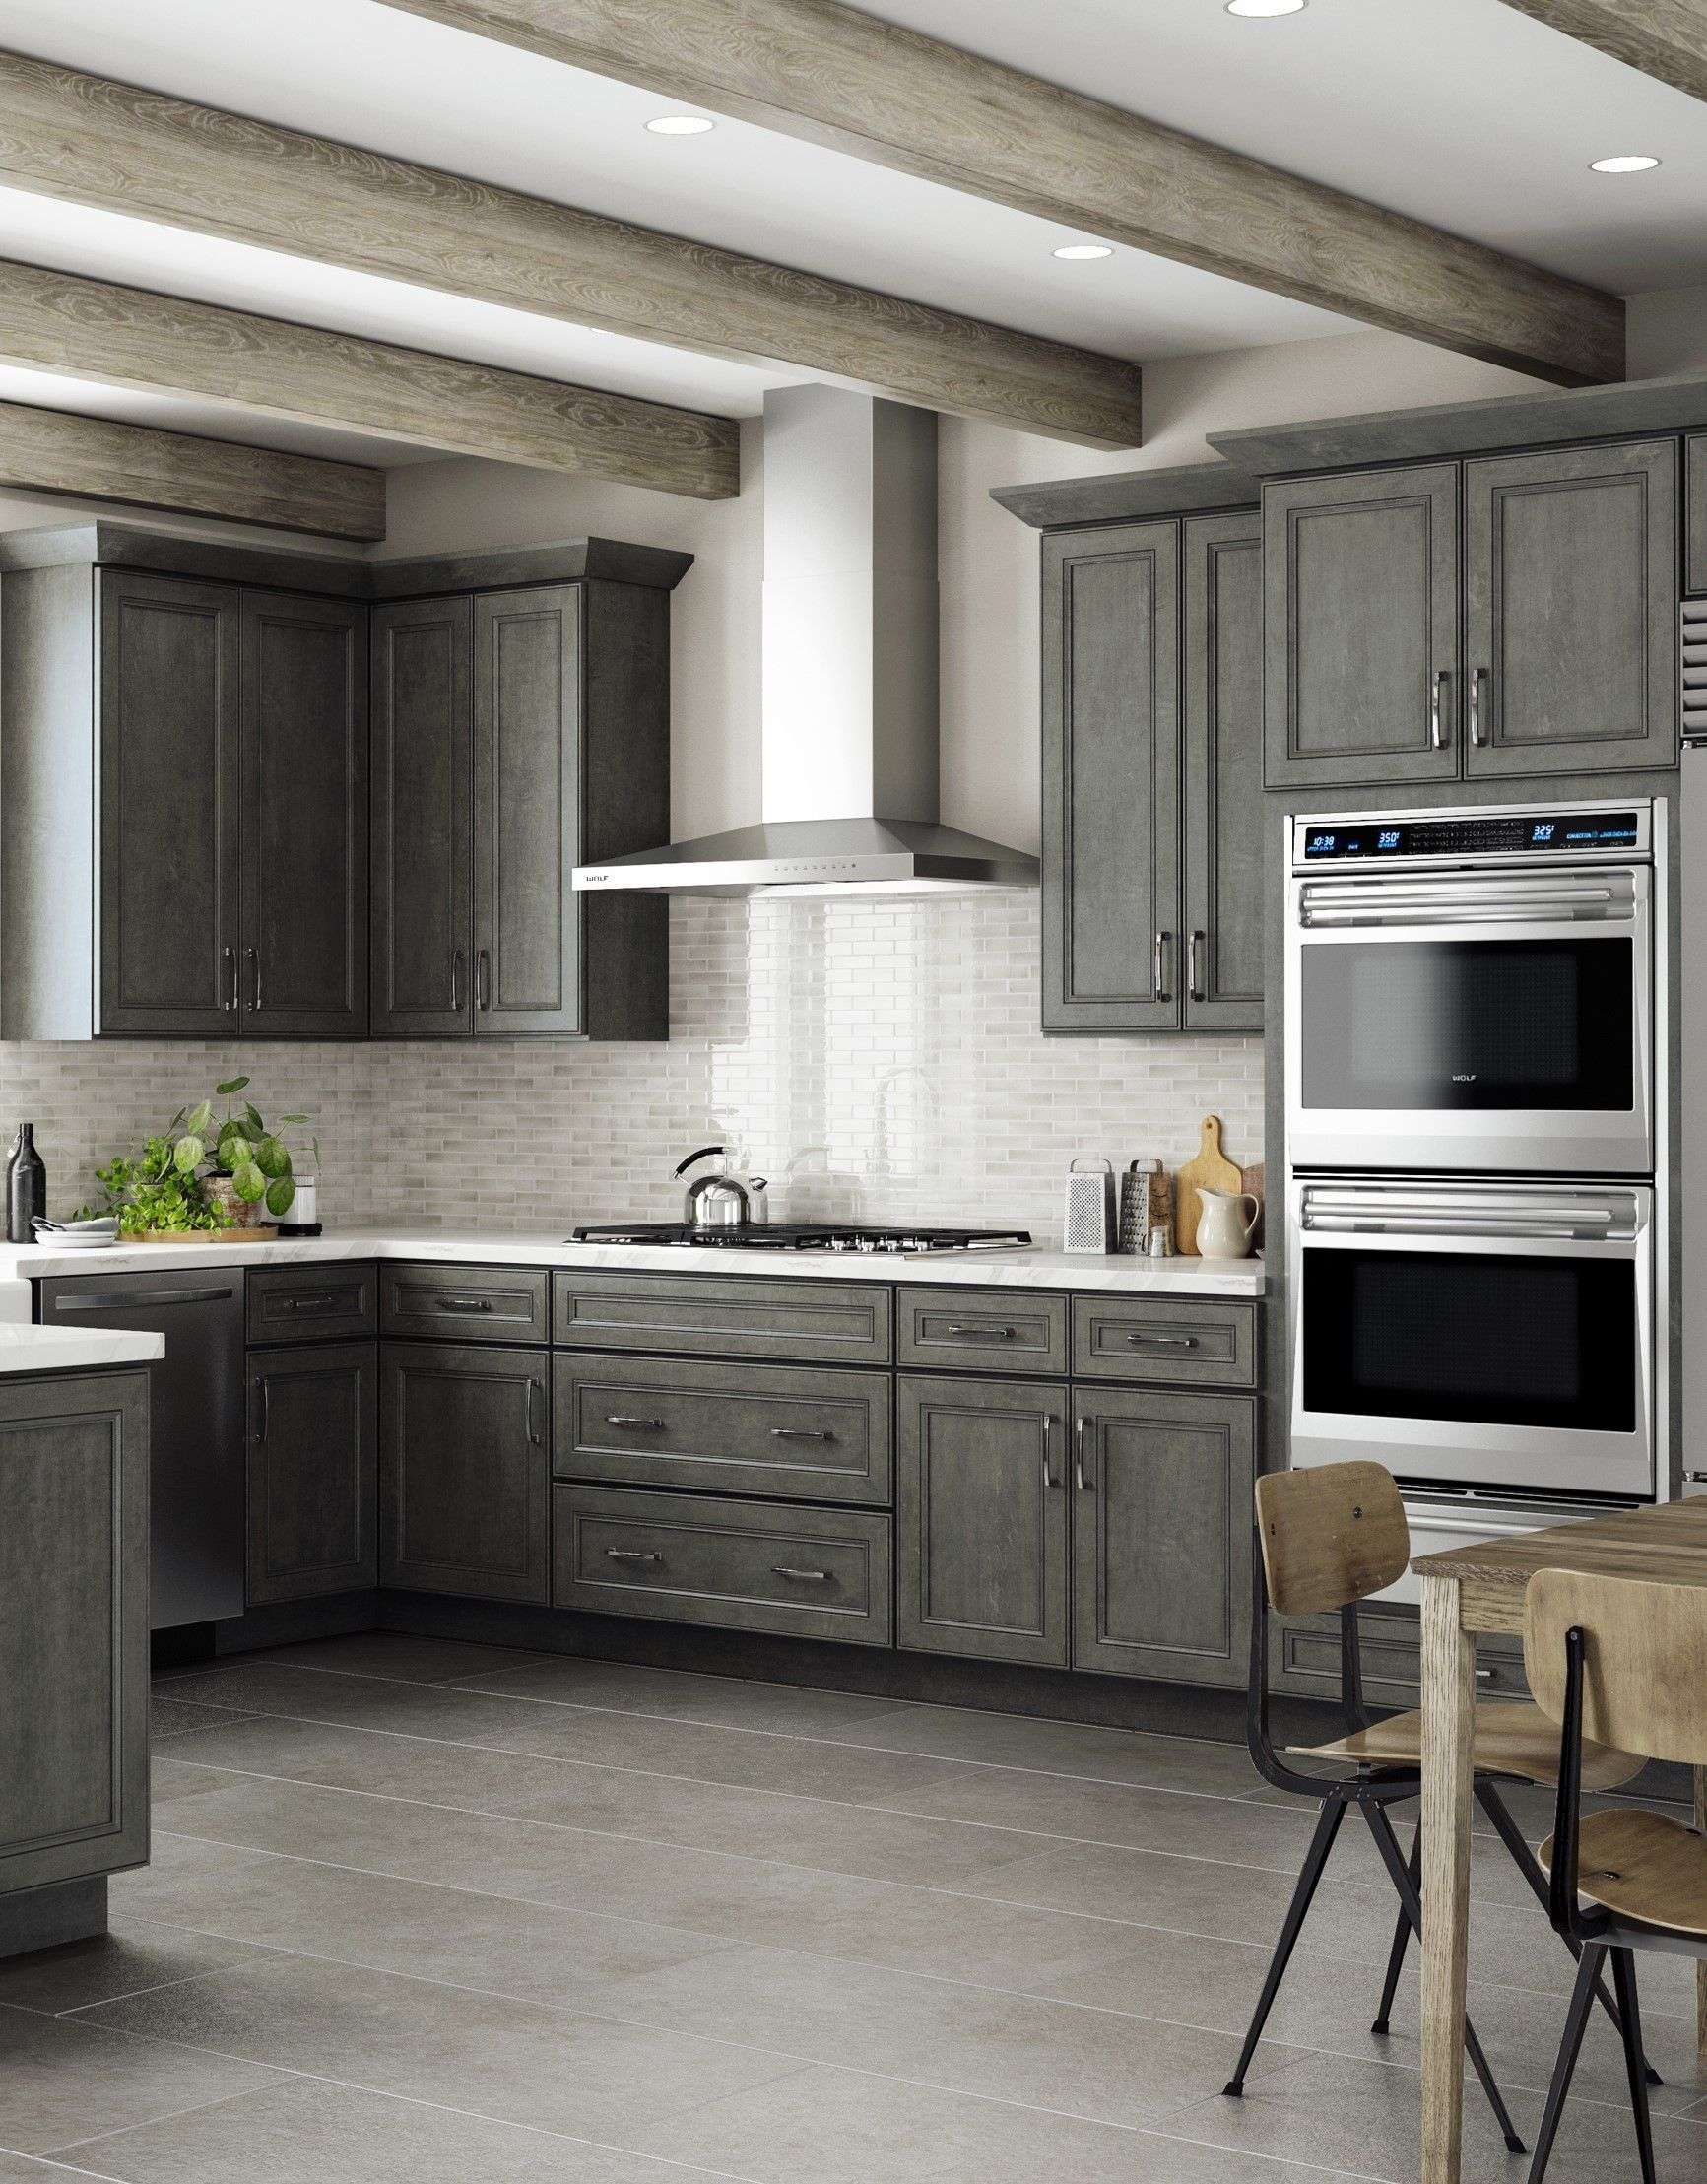 Driftwood York Cabinet Line We Offer A Premium Selection Of Solid Hardwood Ready To Assembl Assembled Kitchen Cabinets Cheap Kitchen Cabinets Kitchen Remodel